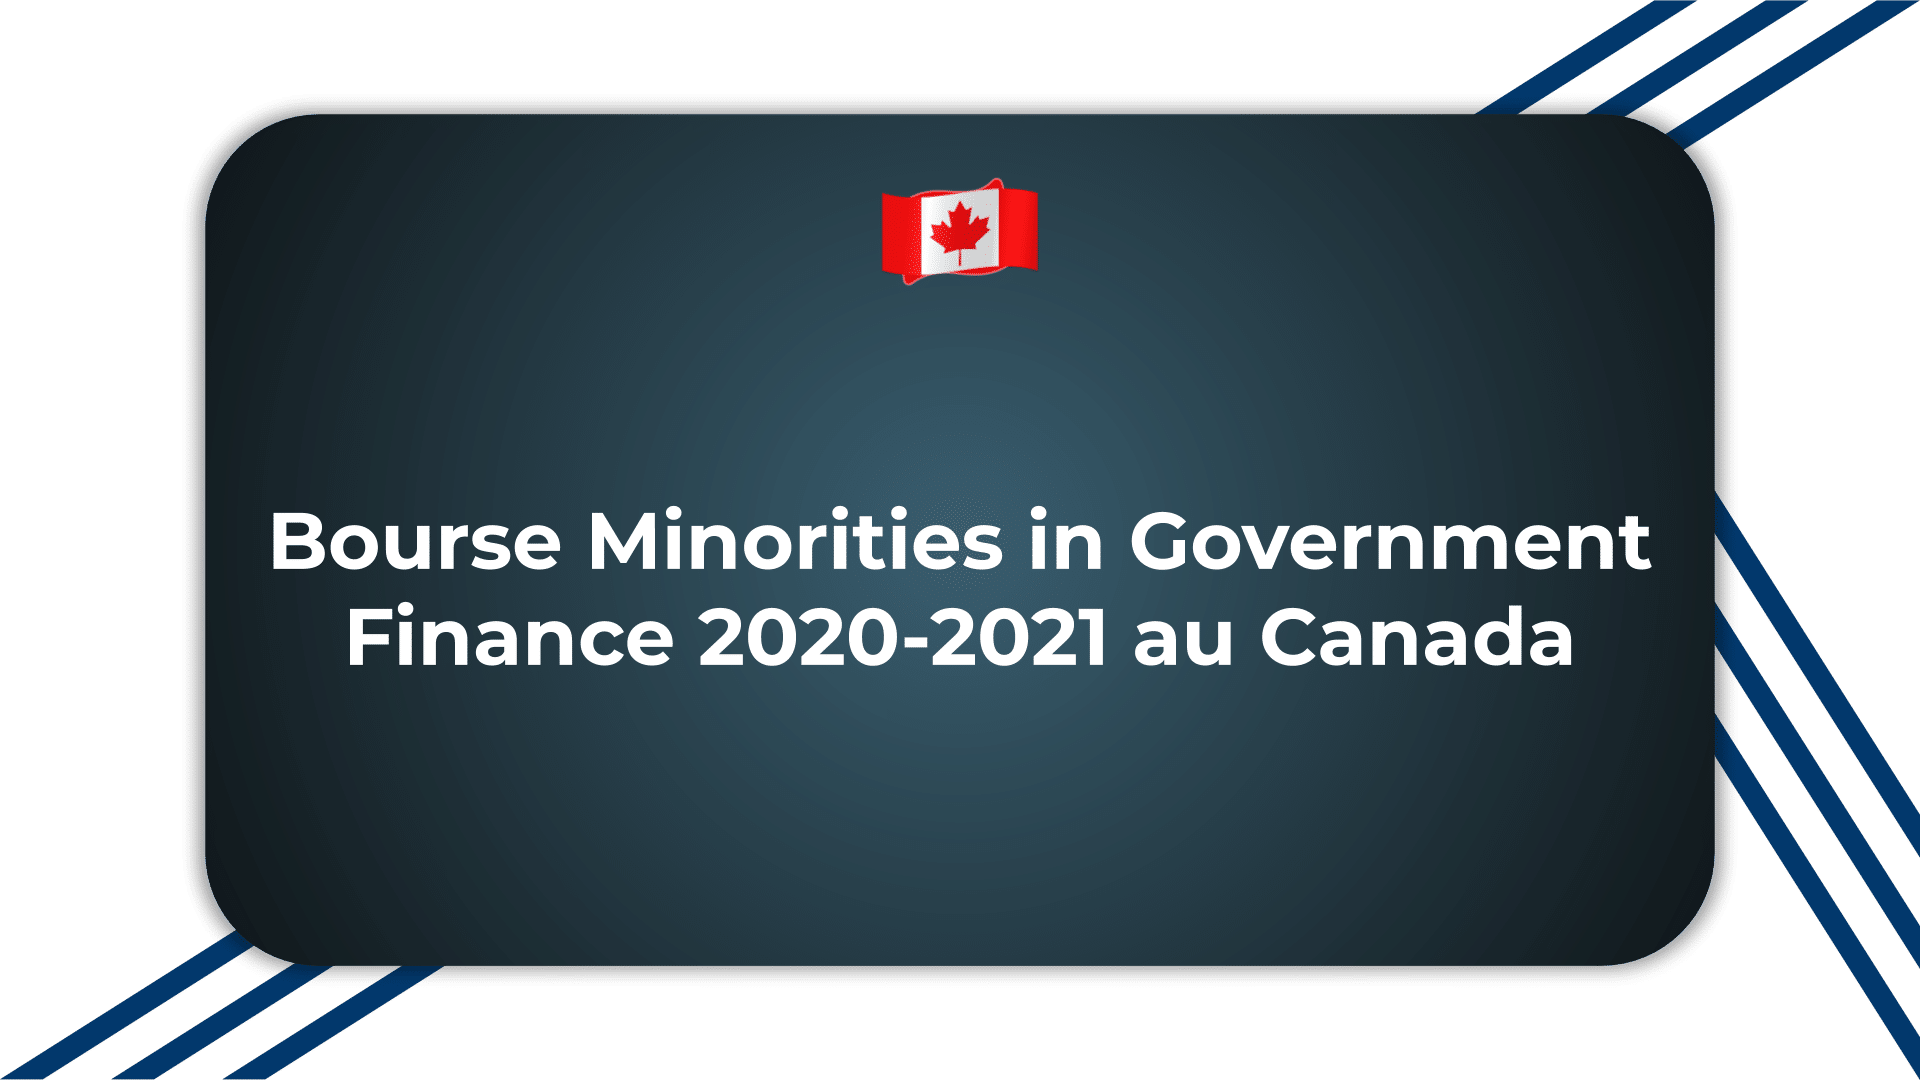 Bourse Minorities in Government Finance